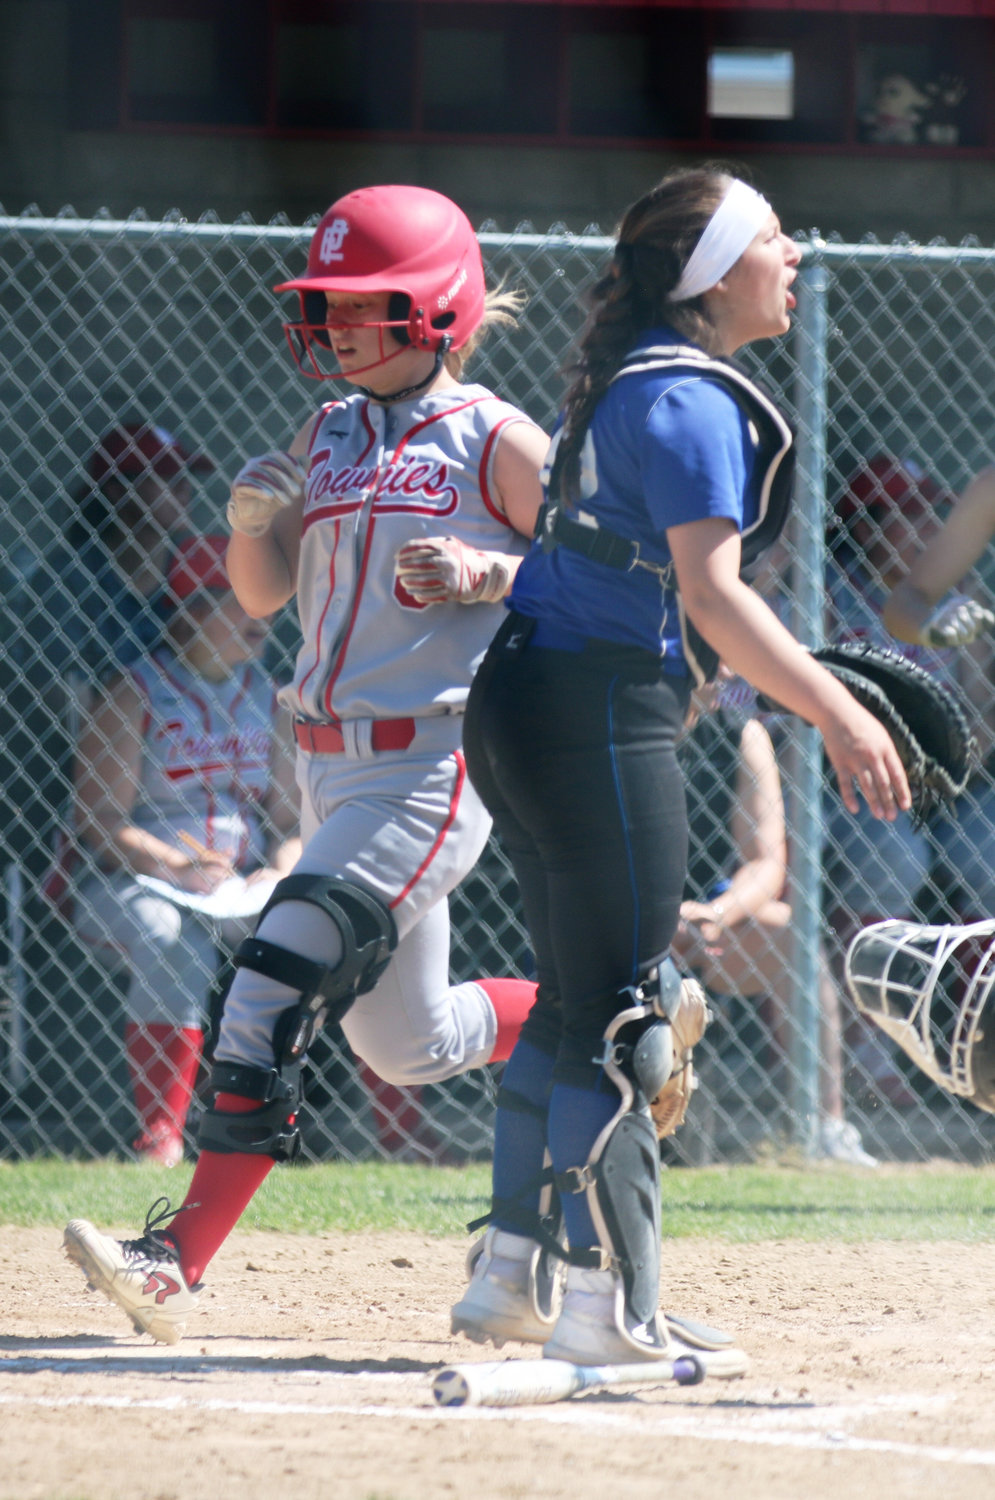 Taylor Babcock scoring run for Townies against Cumberland